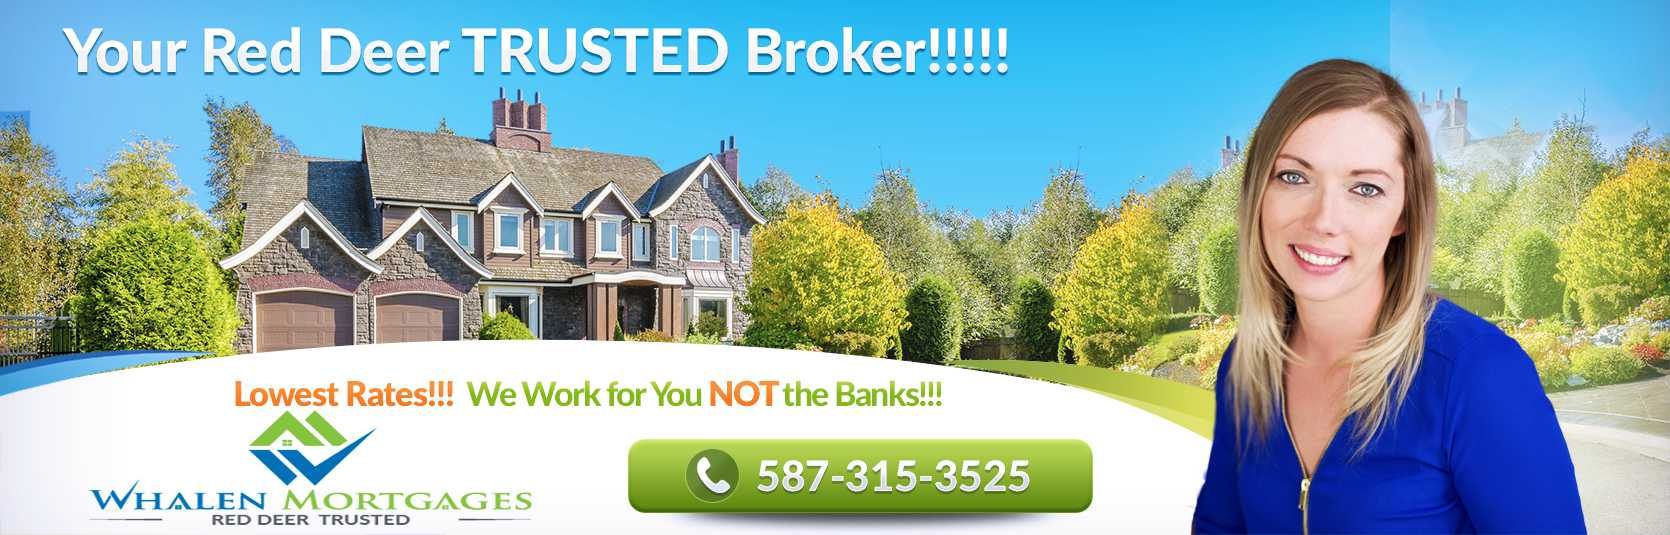 Red Deer Mortgage Broker : Low Rates